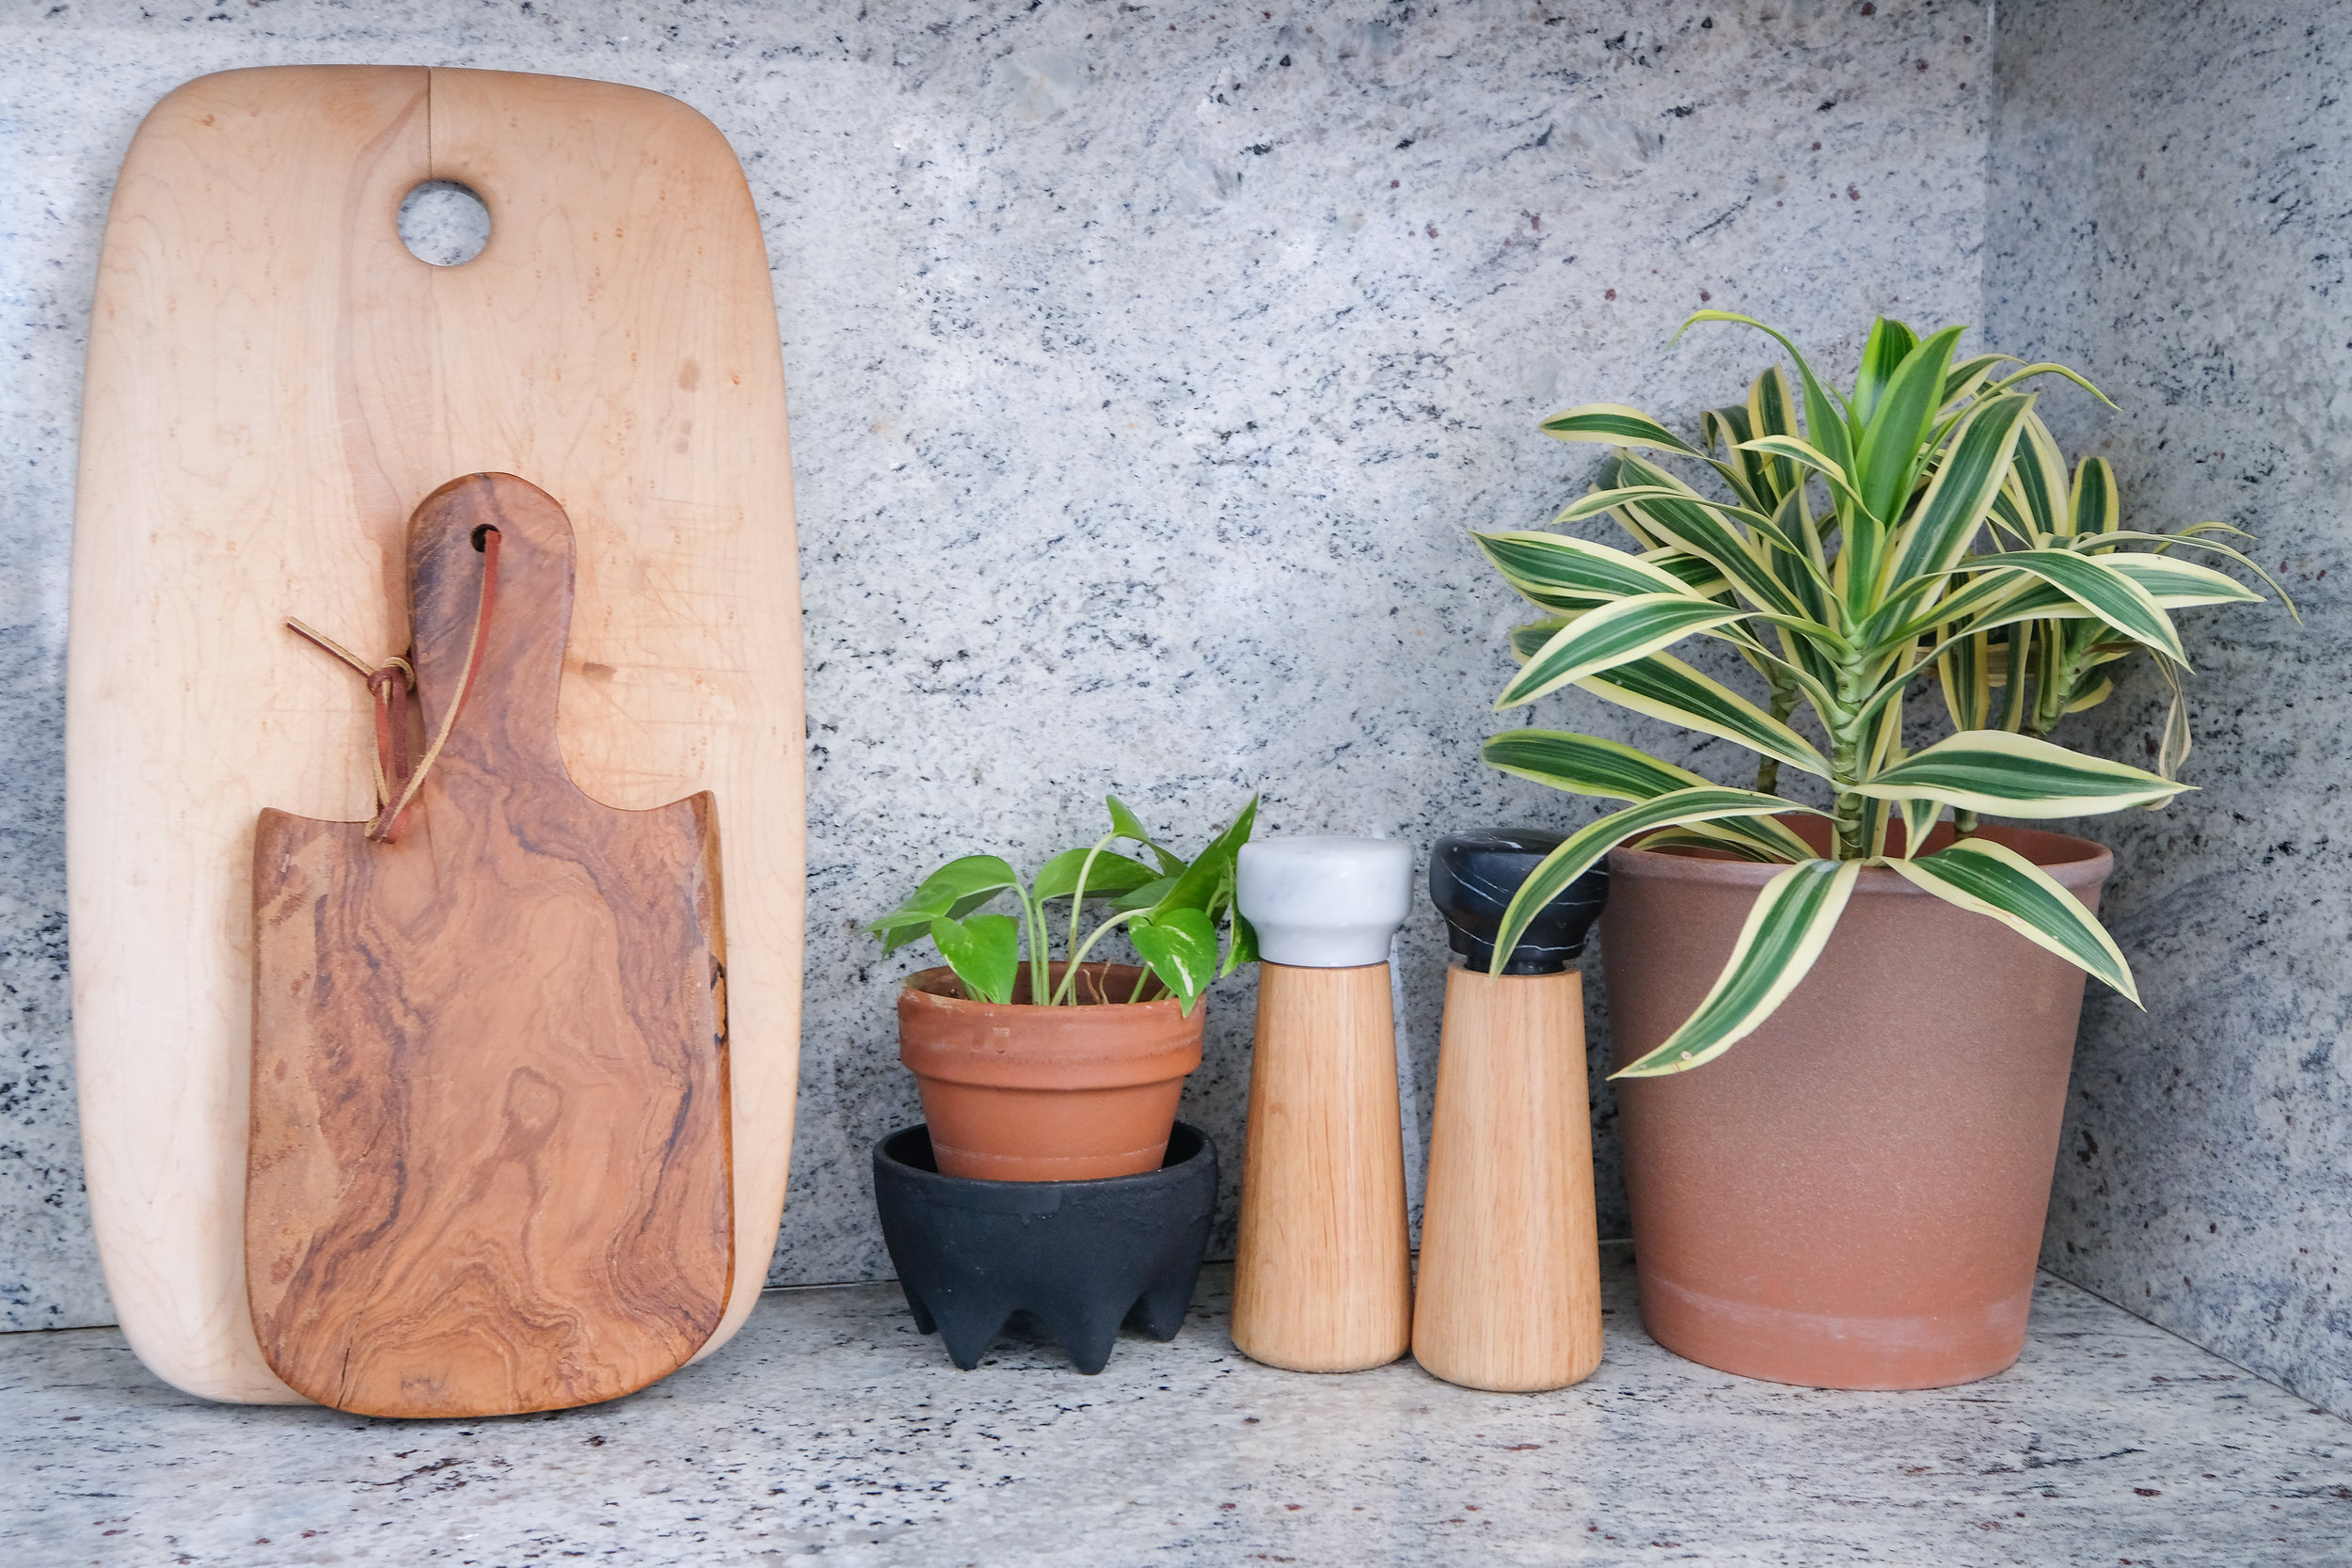 Displaying wood cutting boards in the kitchen is a favorite trick of mine. I also love these salt and pepper grinders with a wooden base.